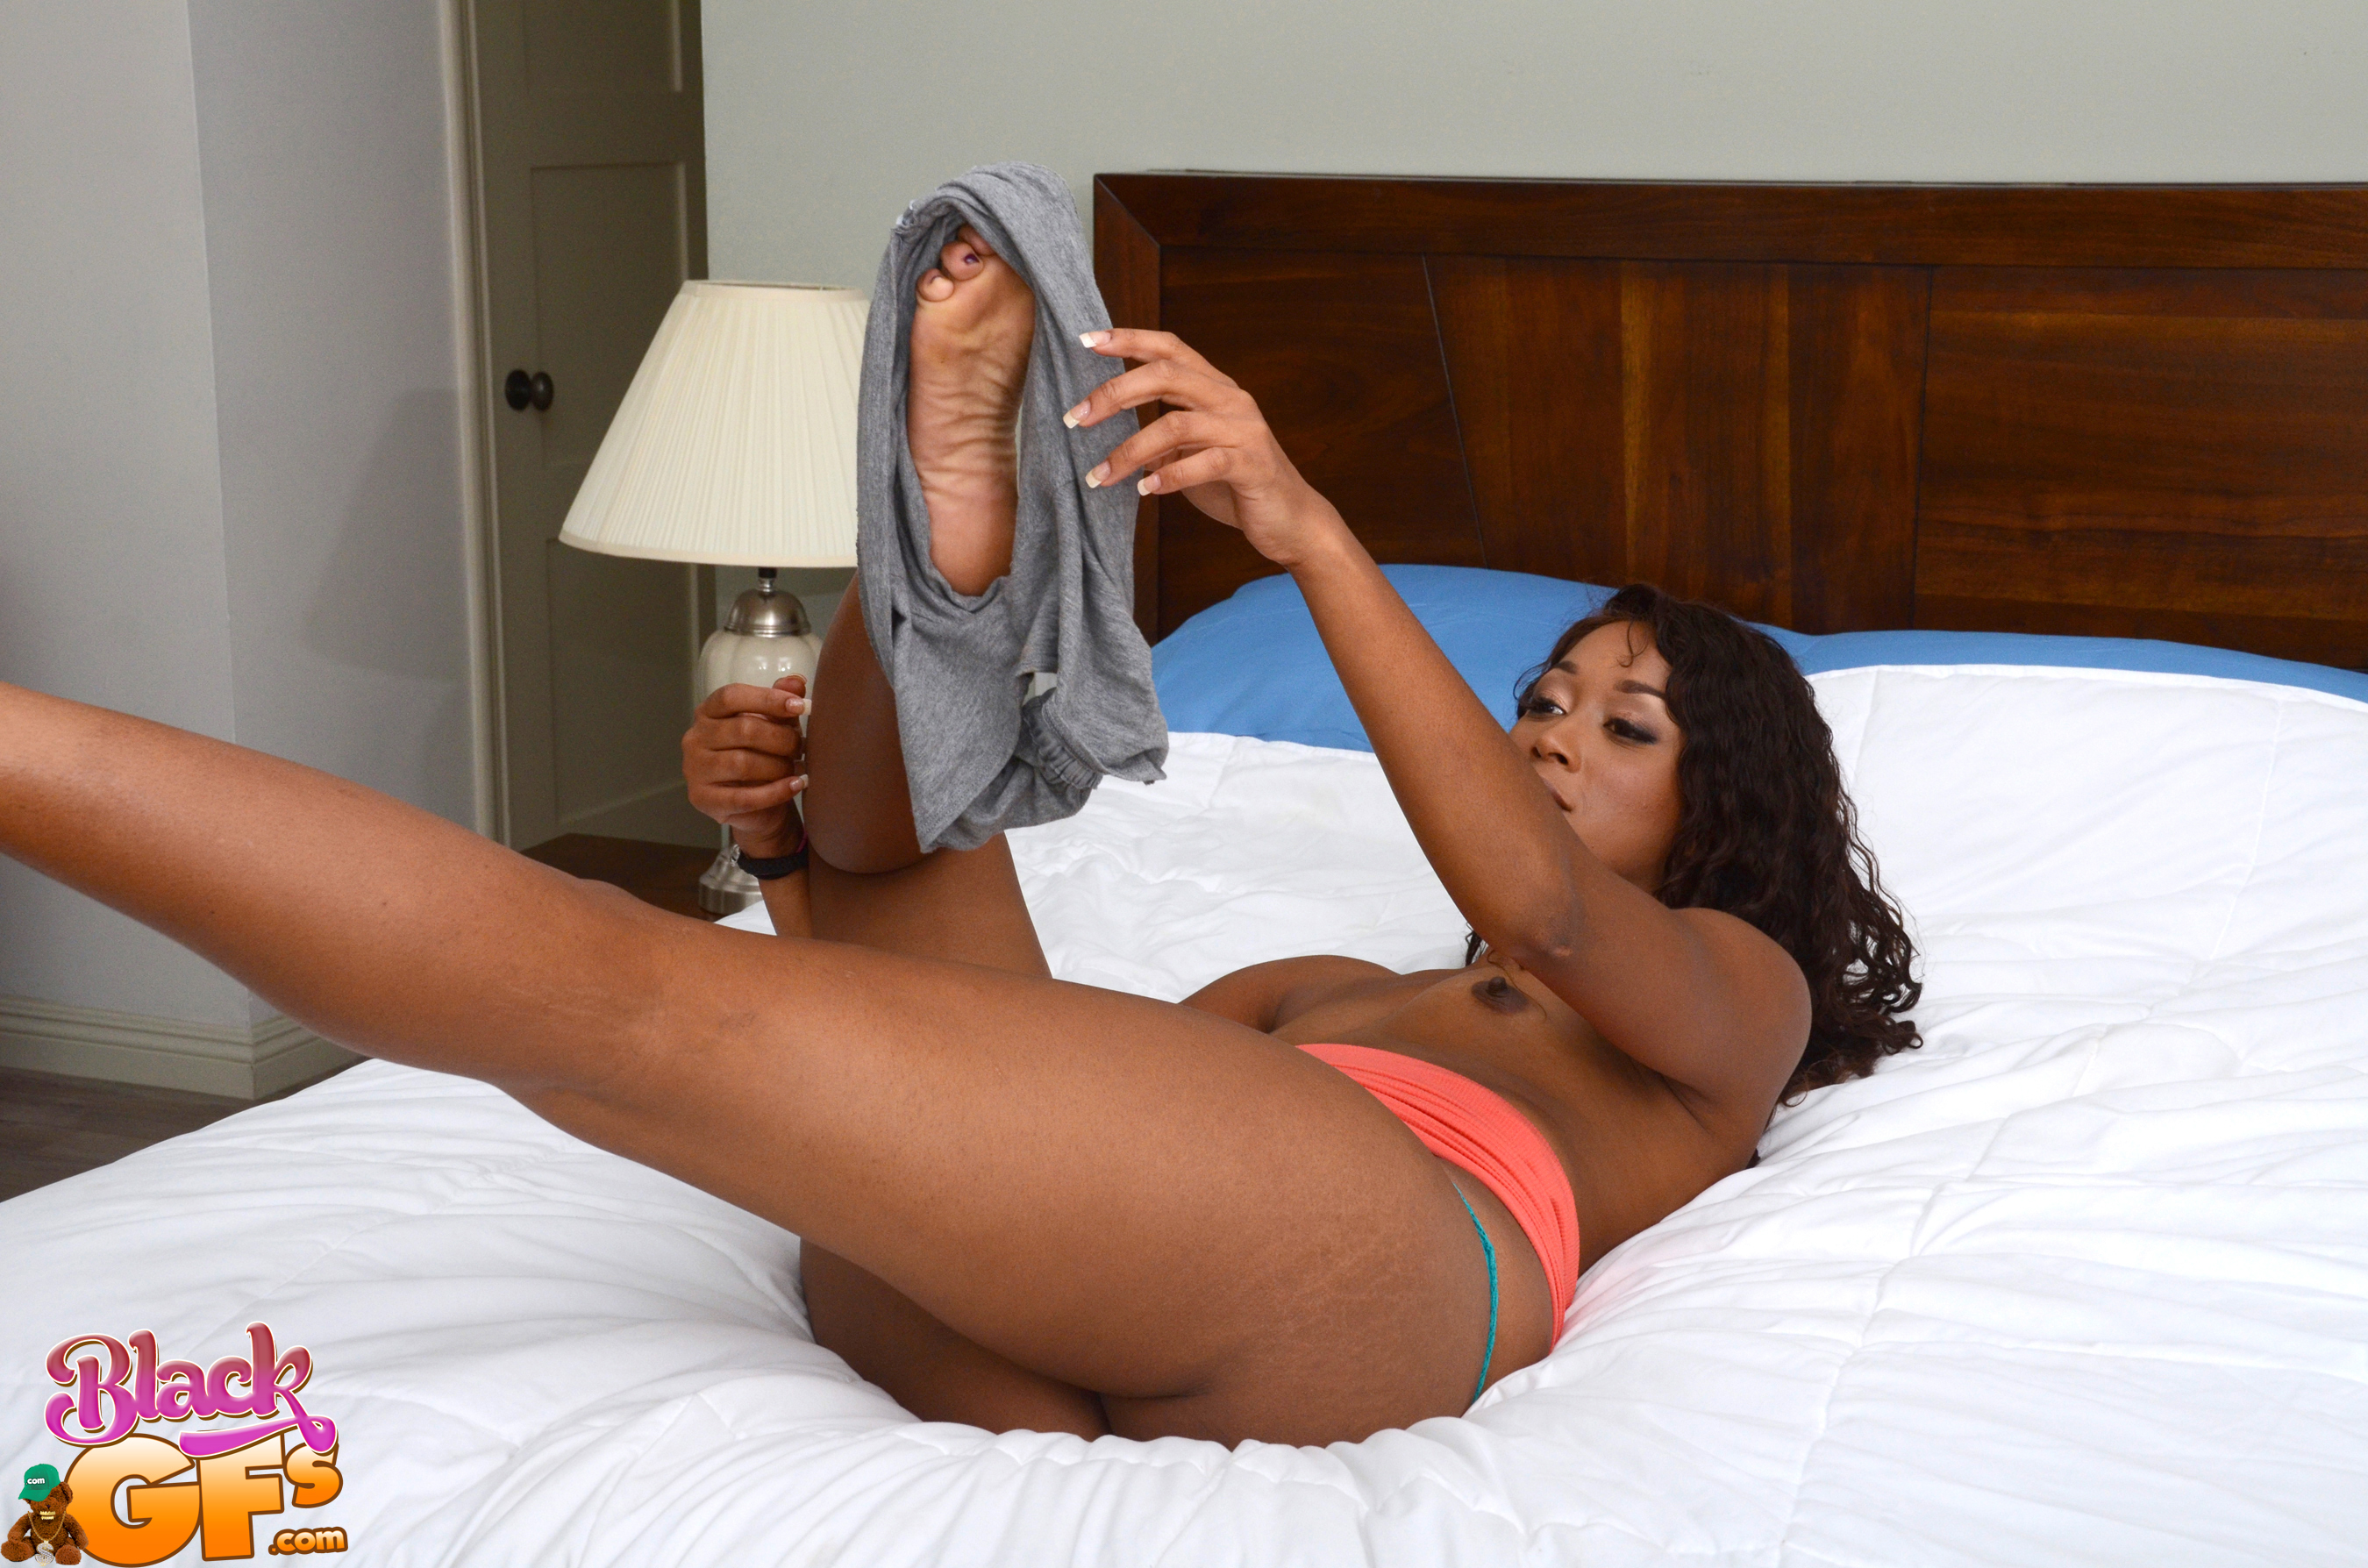 Ashley Sin Is A Nice Black Mate Who Gives Good BJ 608094 African Teen Beauty Gets Tight Pussy Hammered Hard